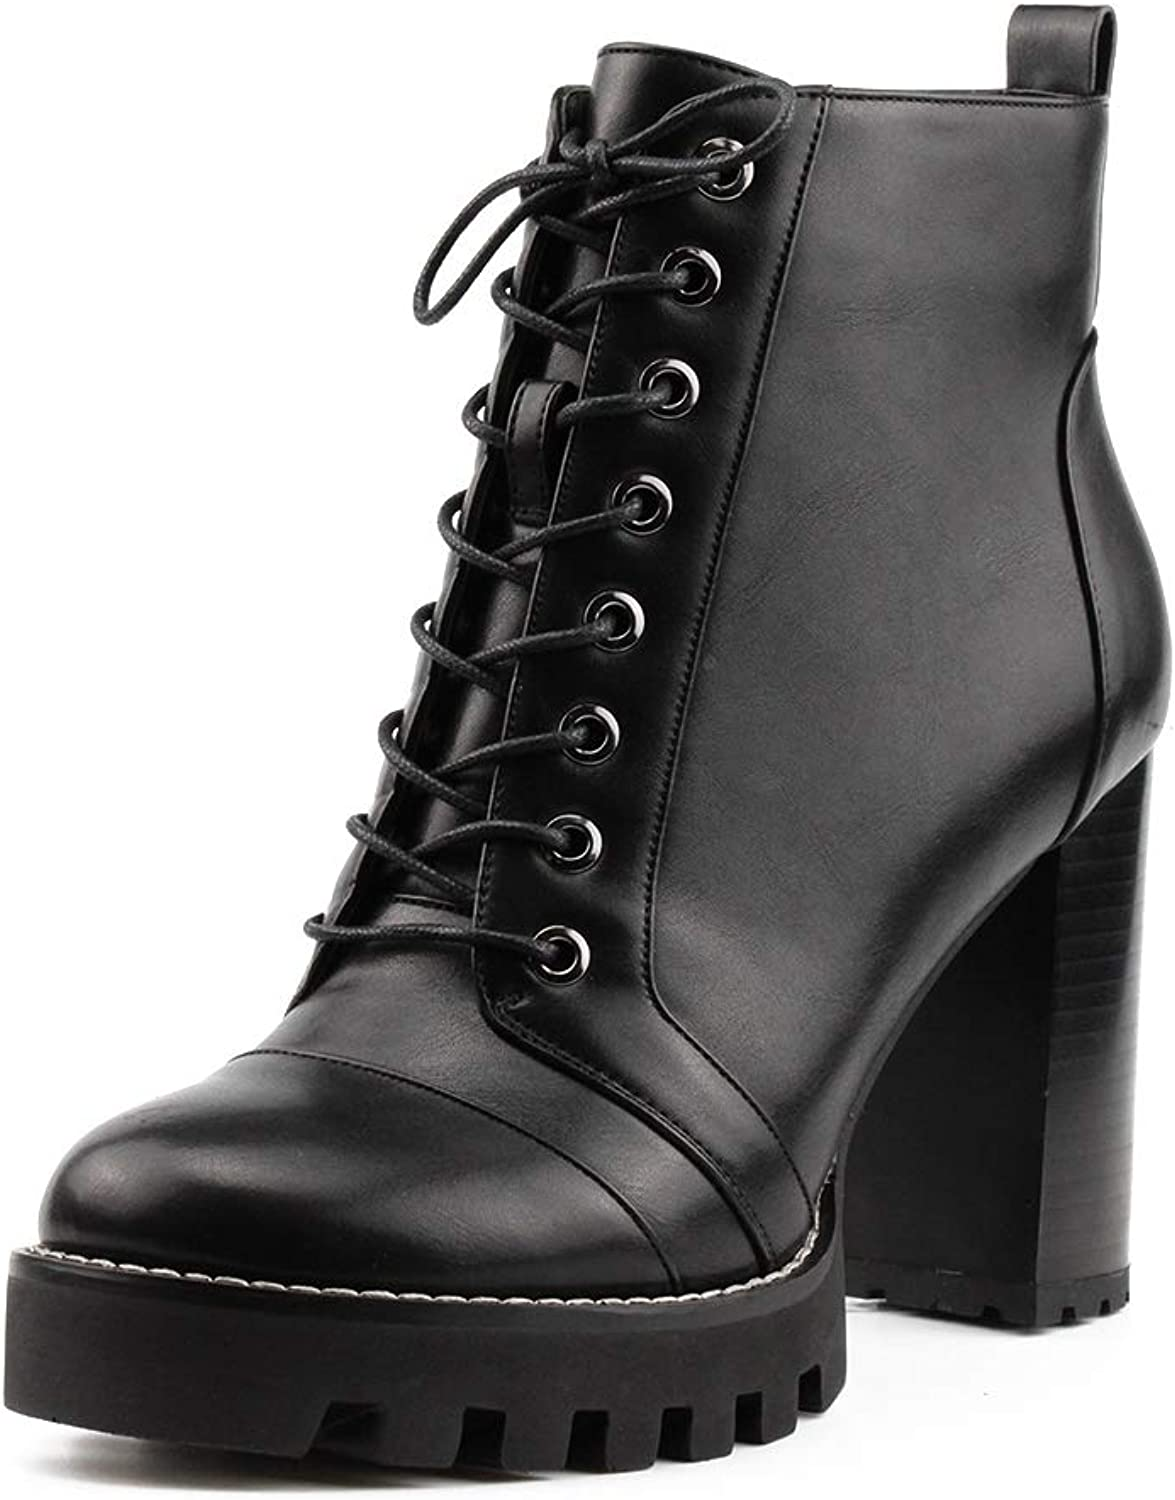 KingRover Women's Strap Buckle Block Round Toe Lace up Side Zipper Chunky Boots